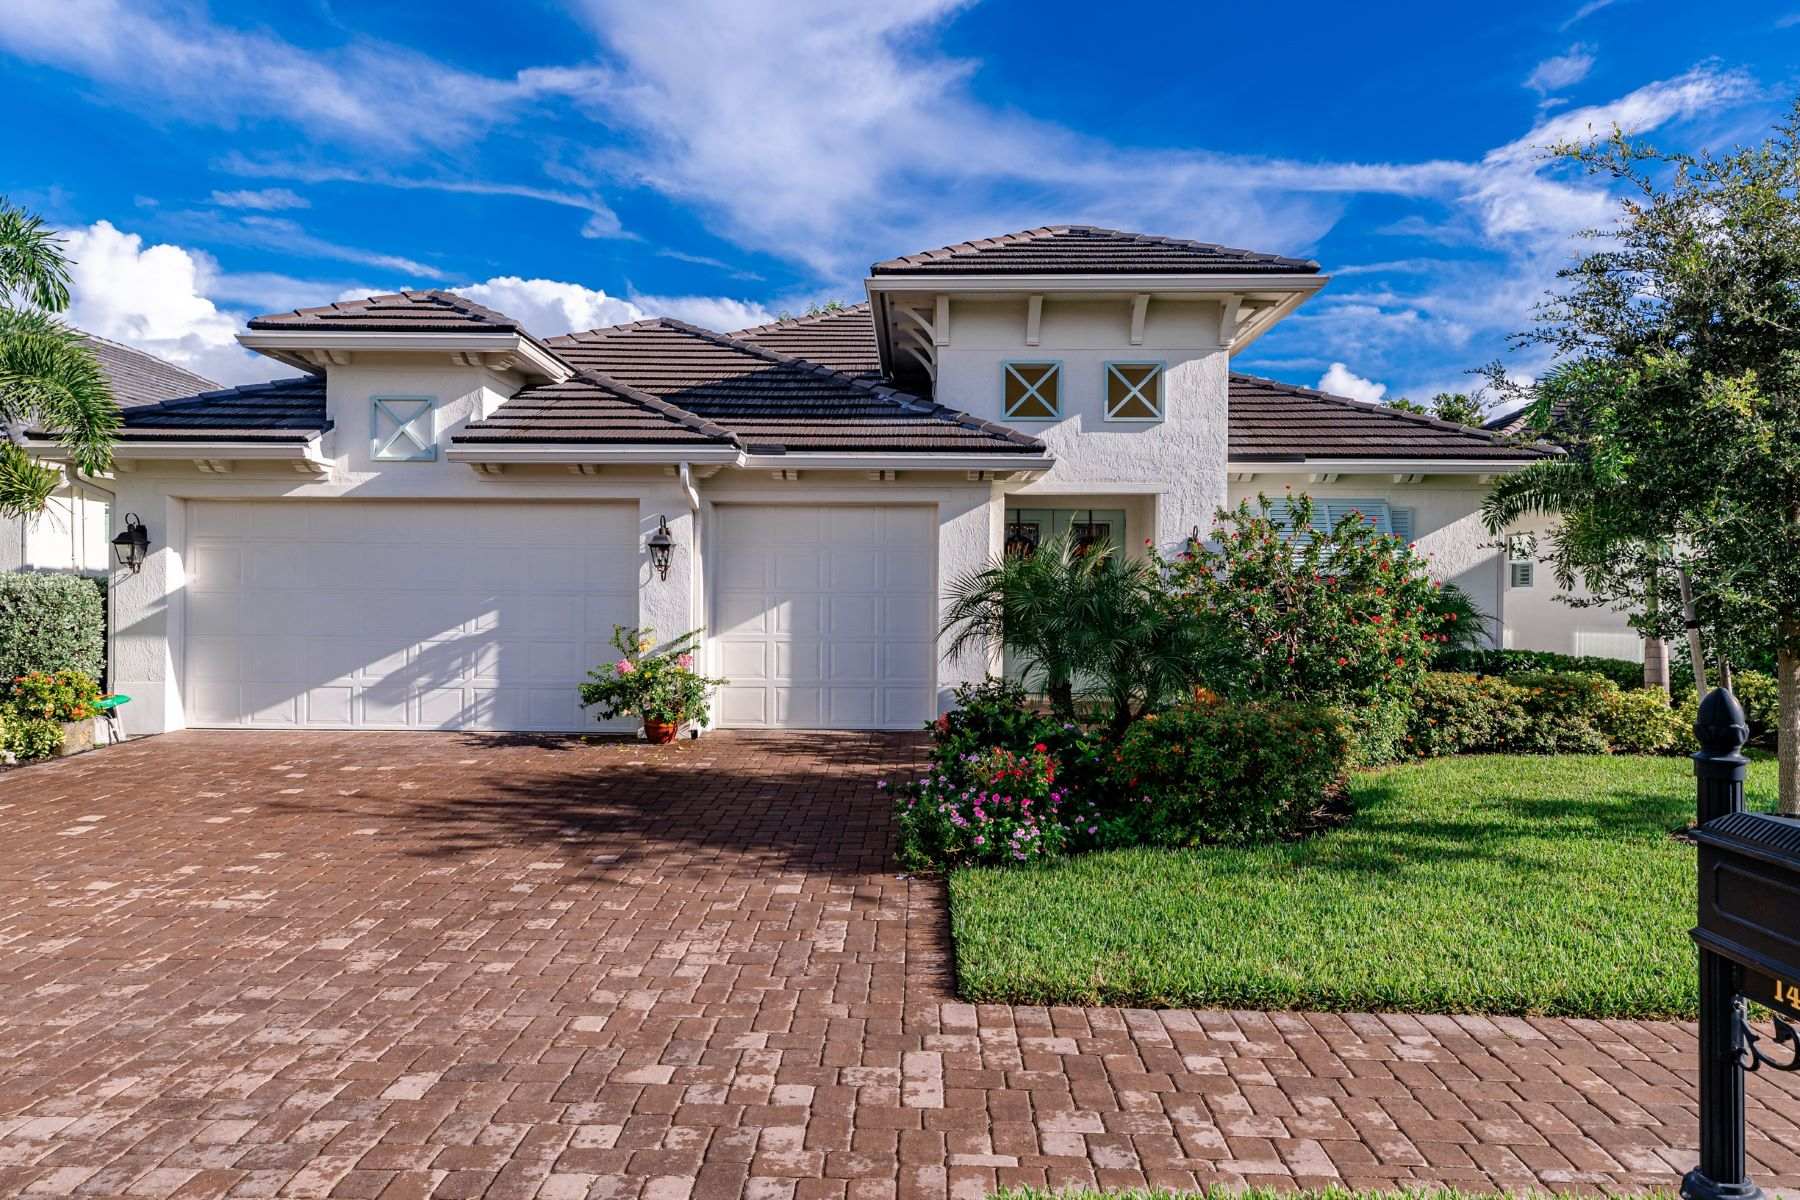 Single Family Homes for Sale at 1431 Lilys Cay Circle, Vero Beach, FL 1431 Lilys Cay Circle Vero Beach, Florida 32967 United States